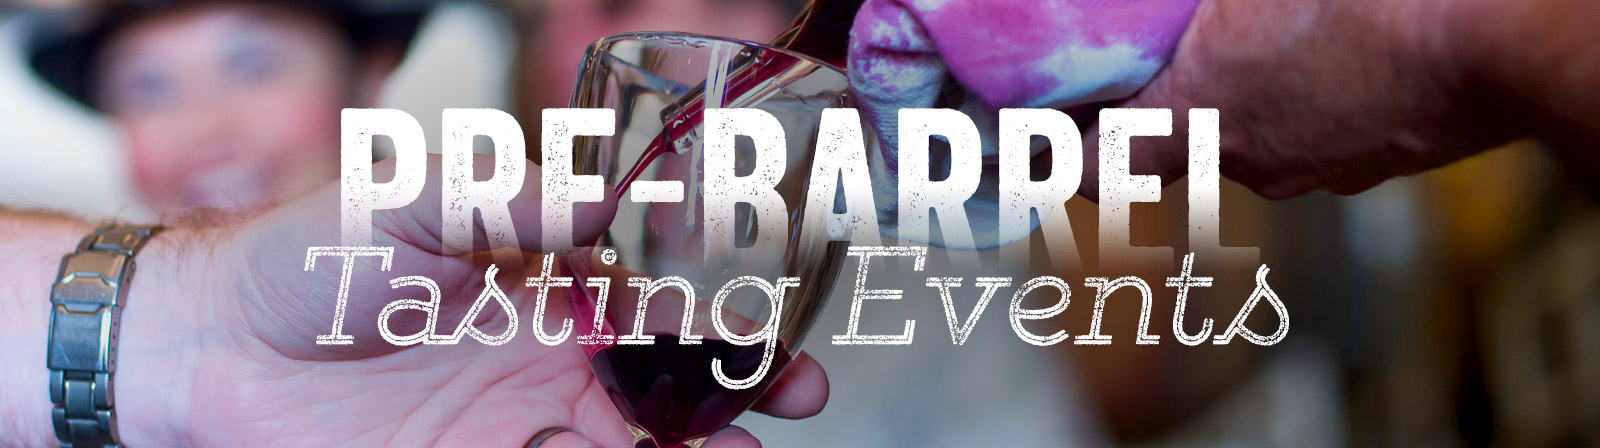 Spring Barrel Wine Tasting Event in Yakima Valley Wine Country